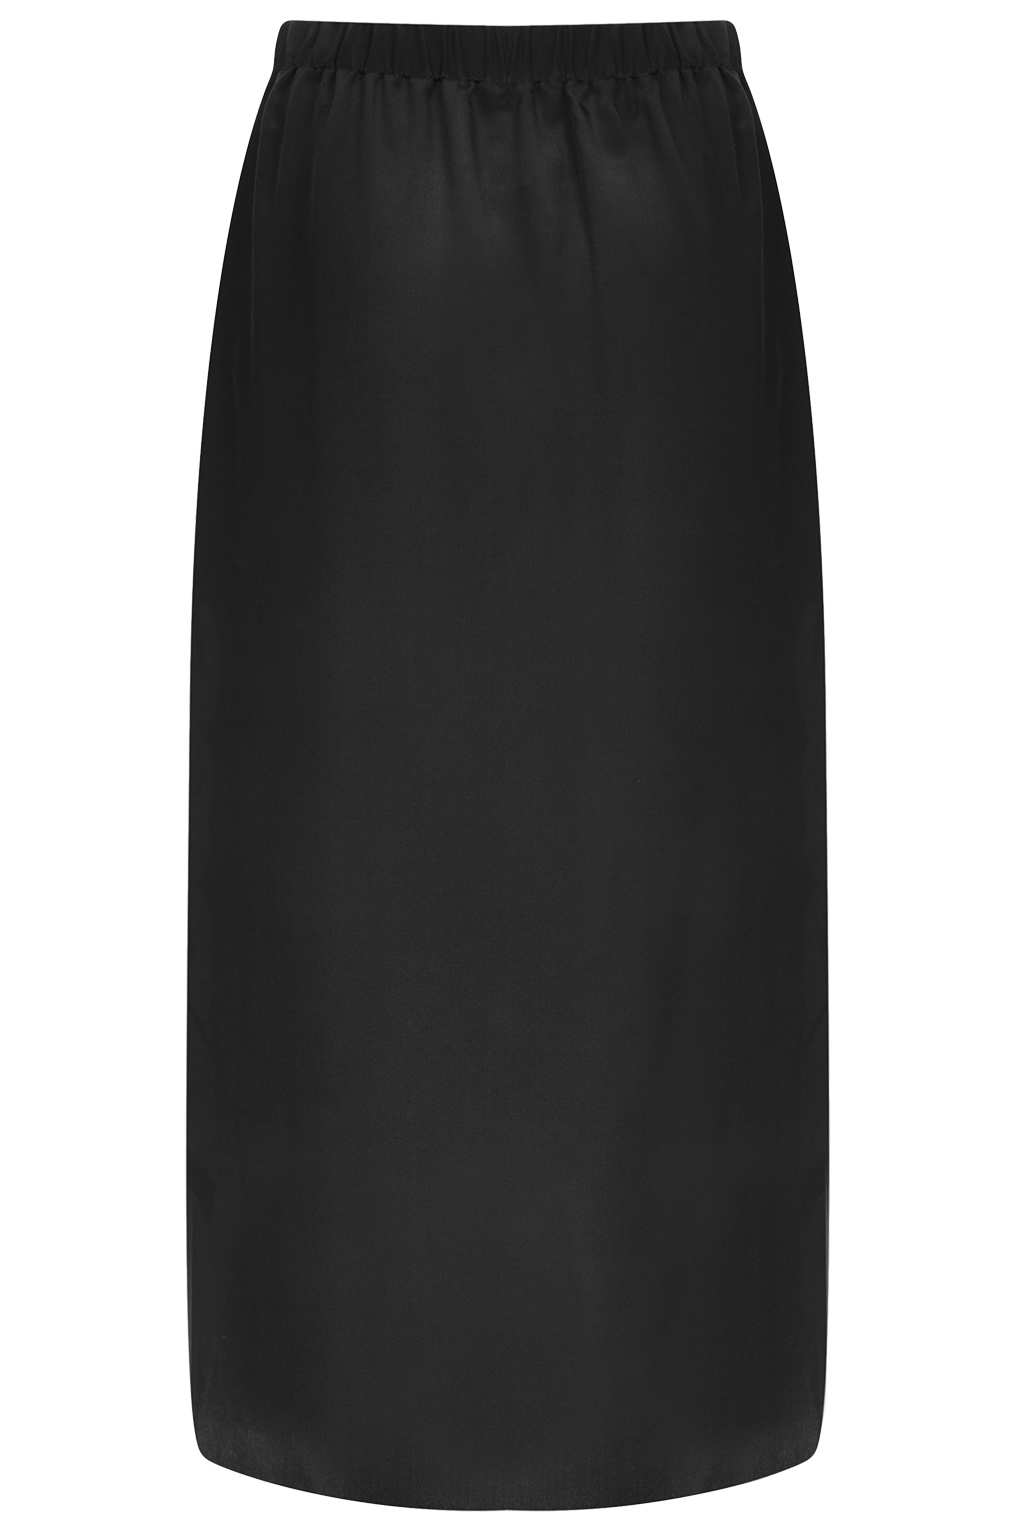 Topshop Silk Wrap Skirt By Boutique in Black | Lyst